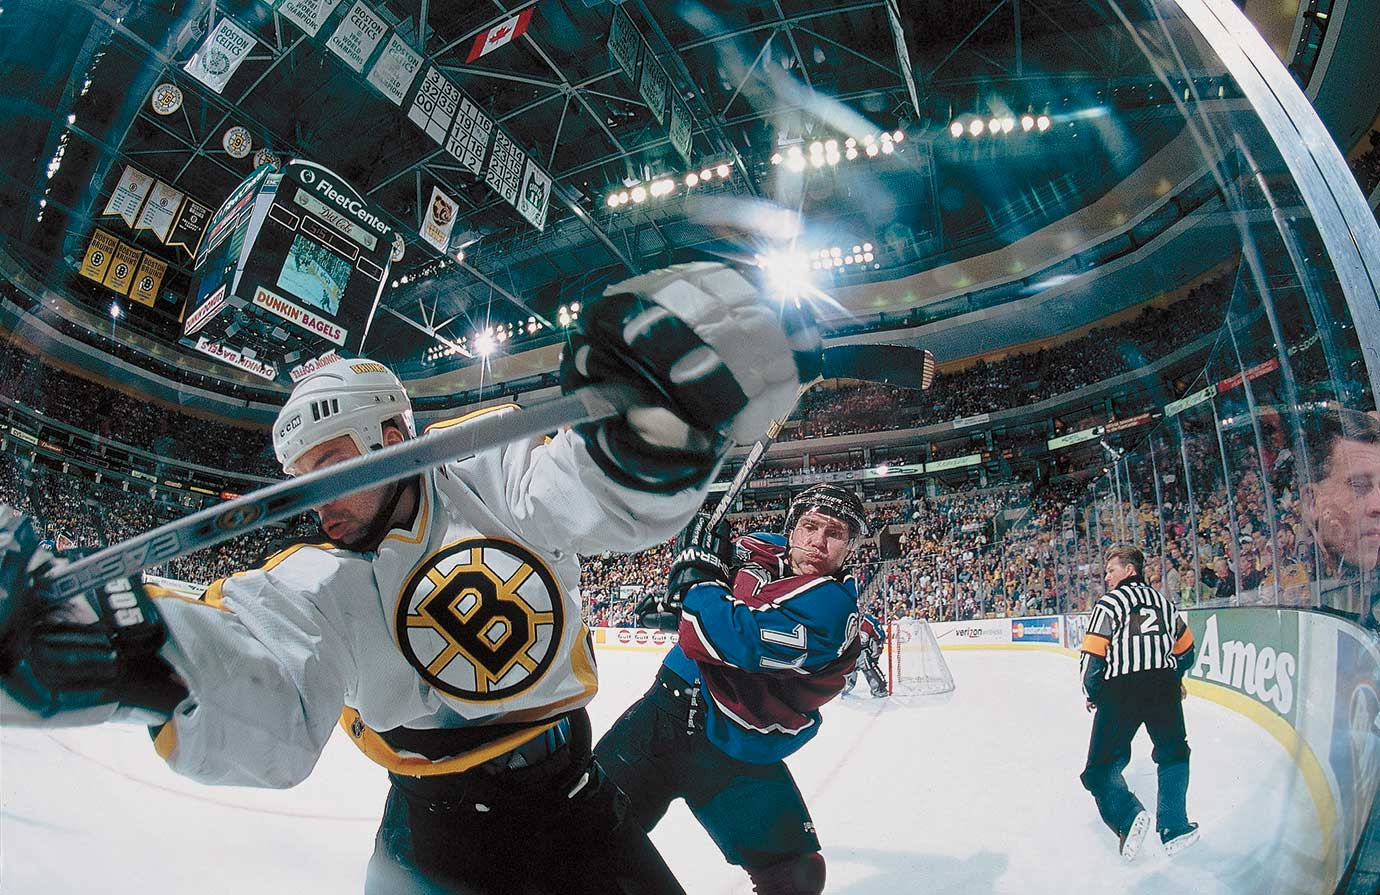 March 24, 2001 — Colorado Avalanche vs. Boston Bruins